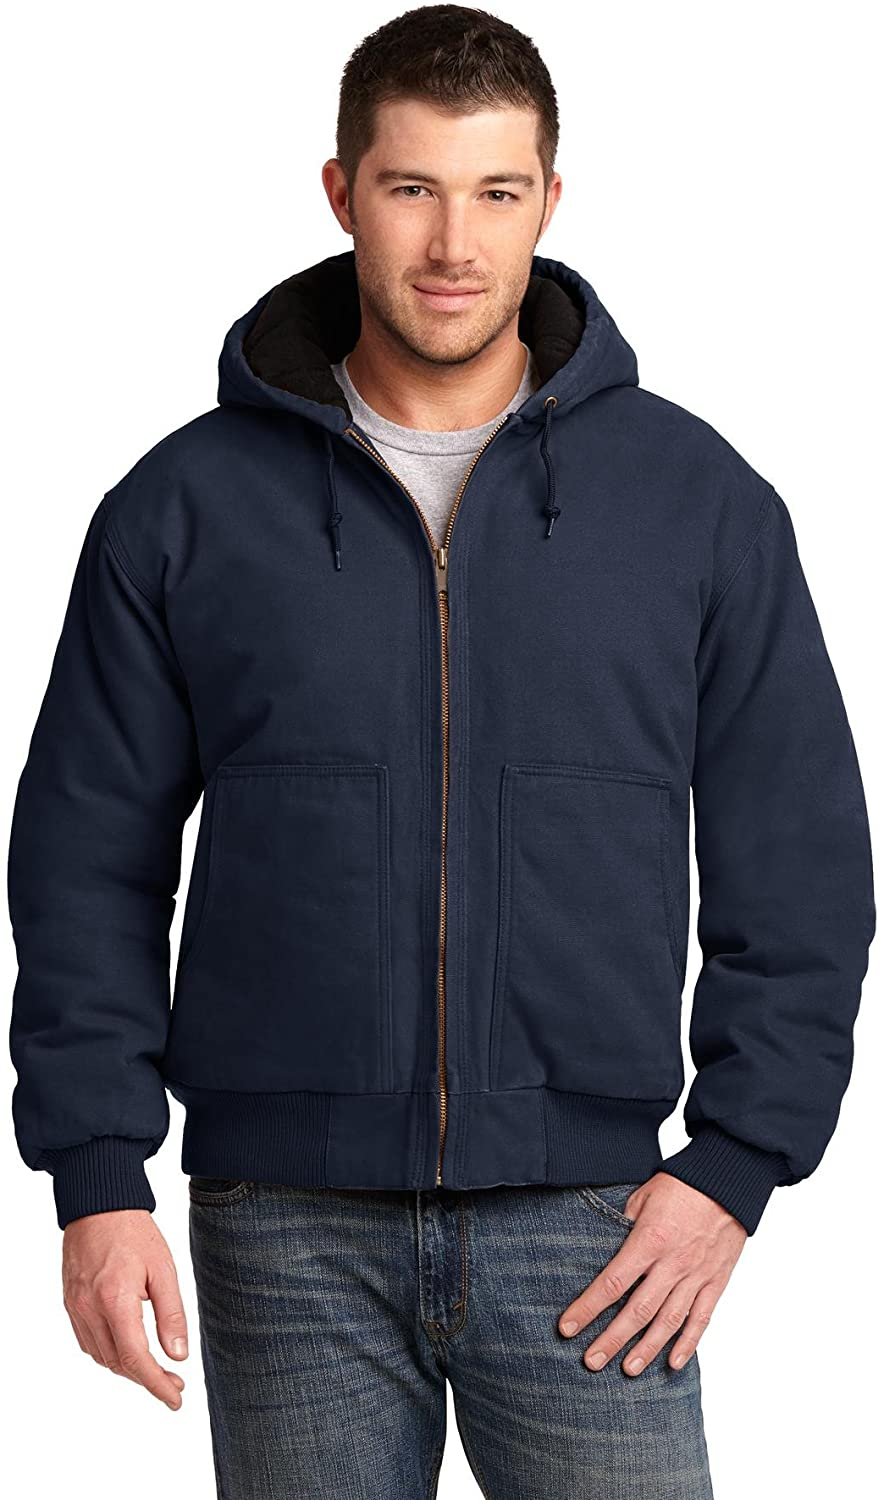 Cornerstone Men's Washed Duck Cloth Insulated Hooded Work Jacket